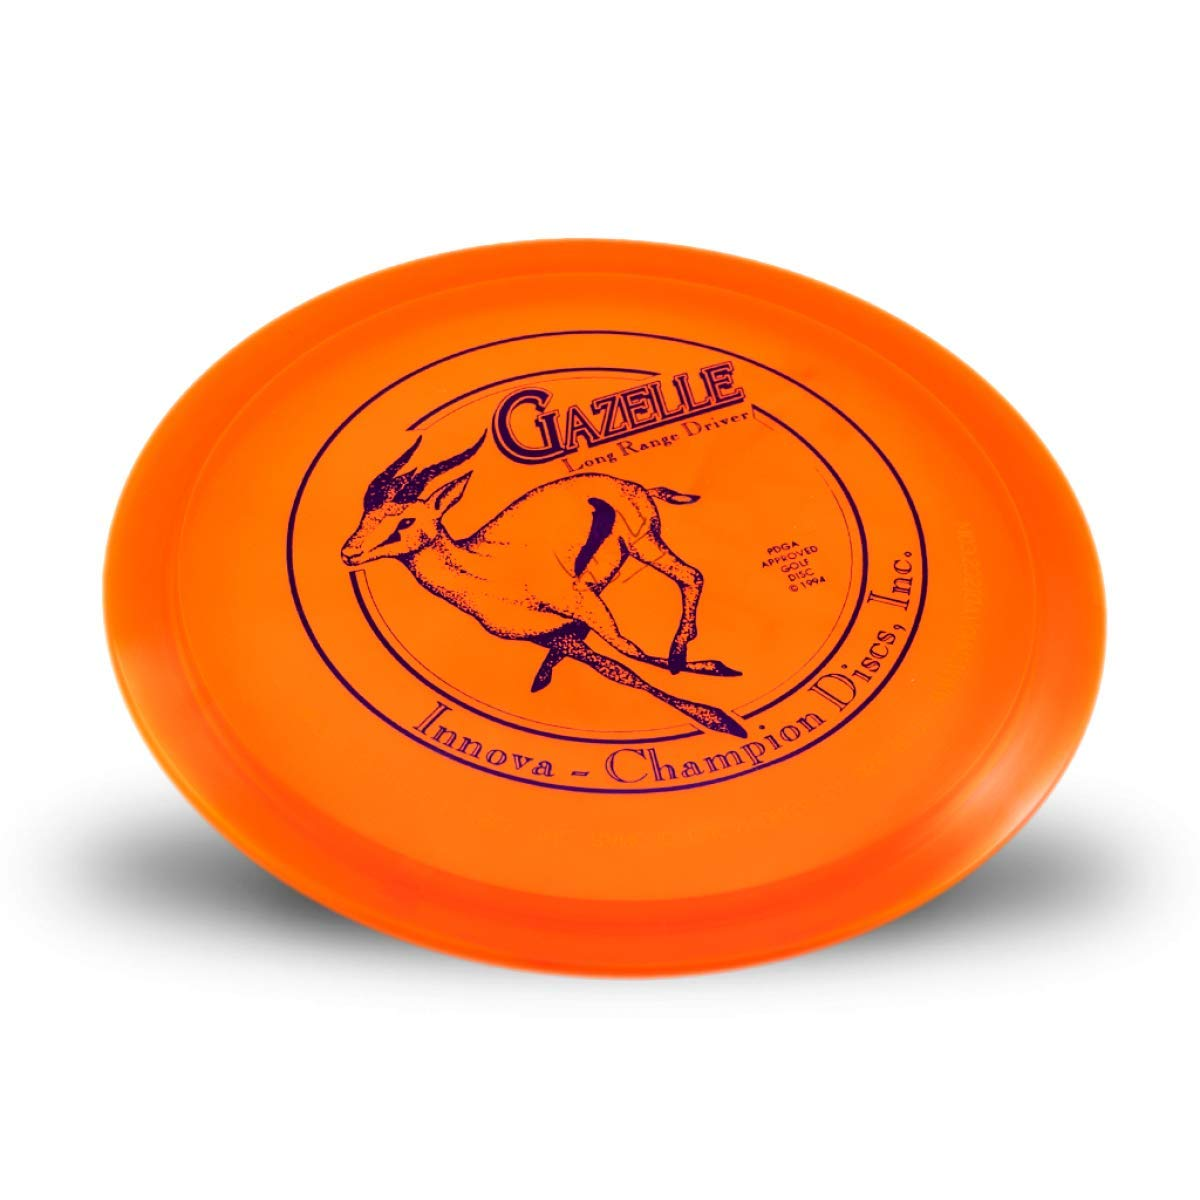 Innova Limited Edition Champion Gazelle Fairway Driver Golf Disc [Colors May Vary] - 173-175g